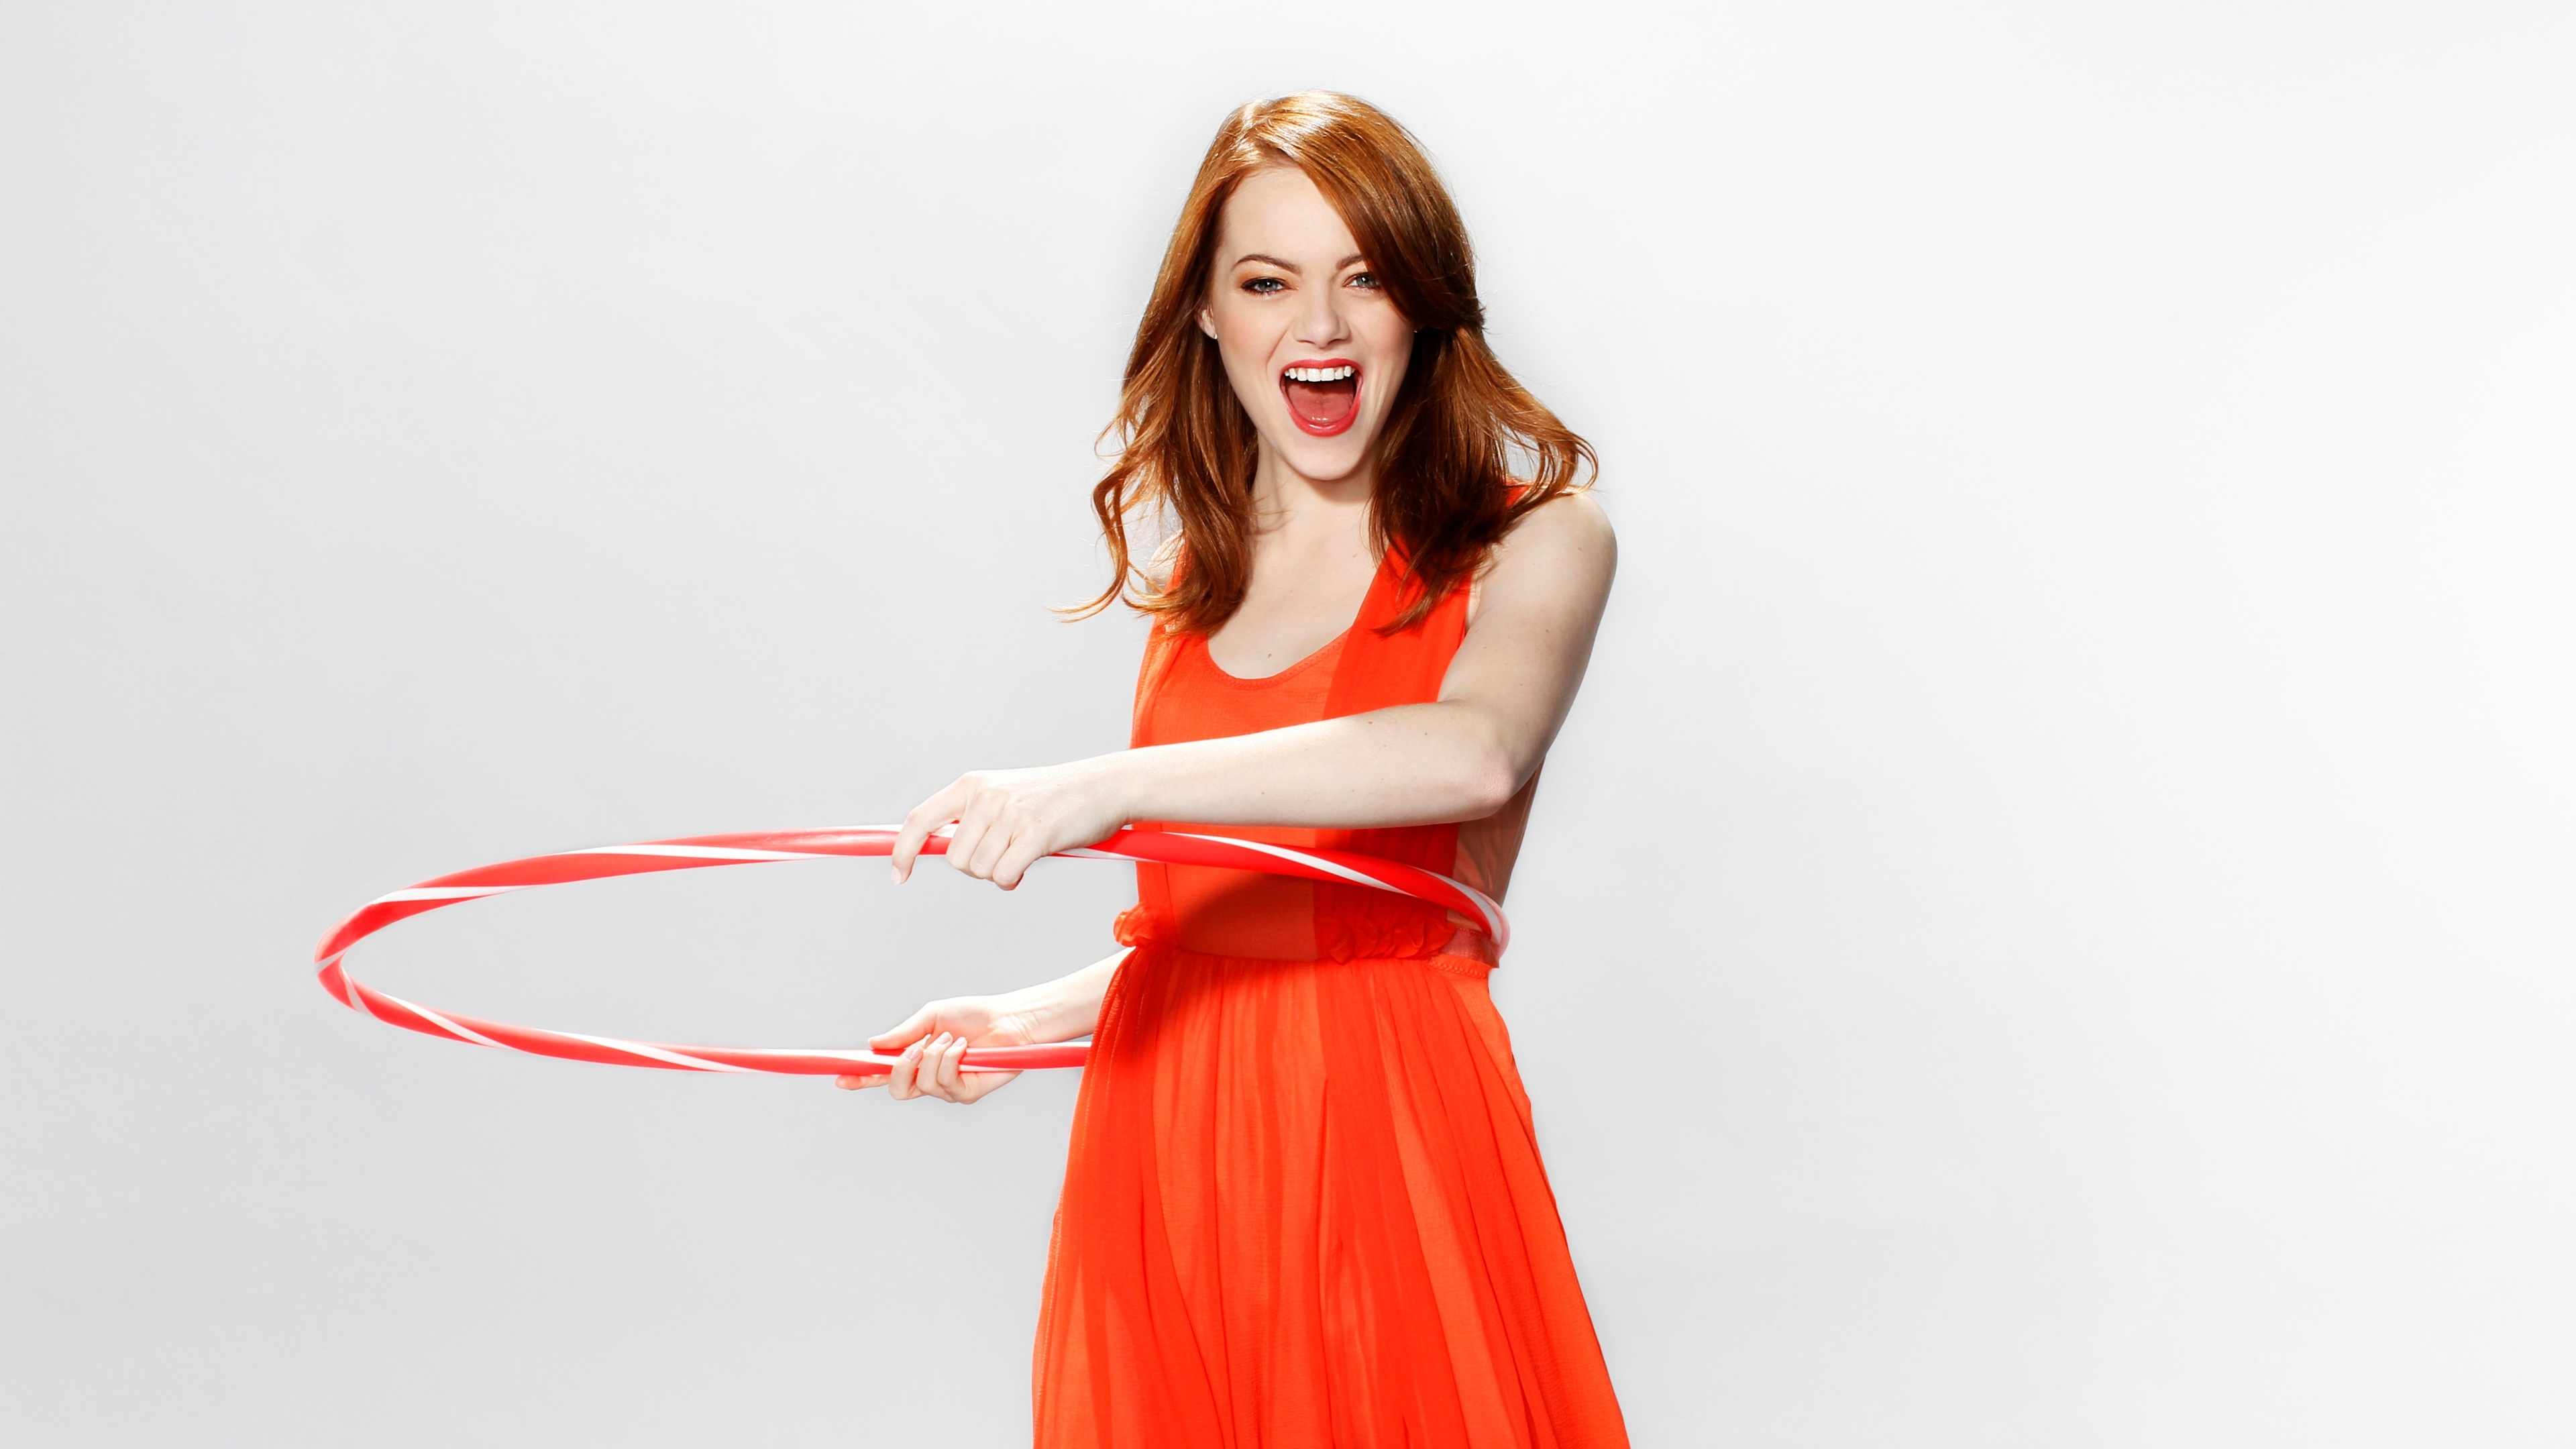 emma stone 4 1536857772 - Emma Stone 4 - girls wallpapers, emma stone wallpapers, celebrities wallpapers